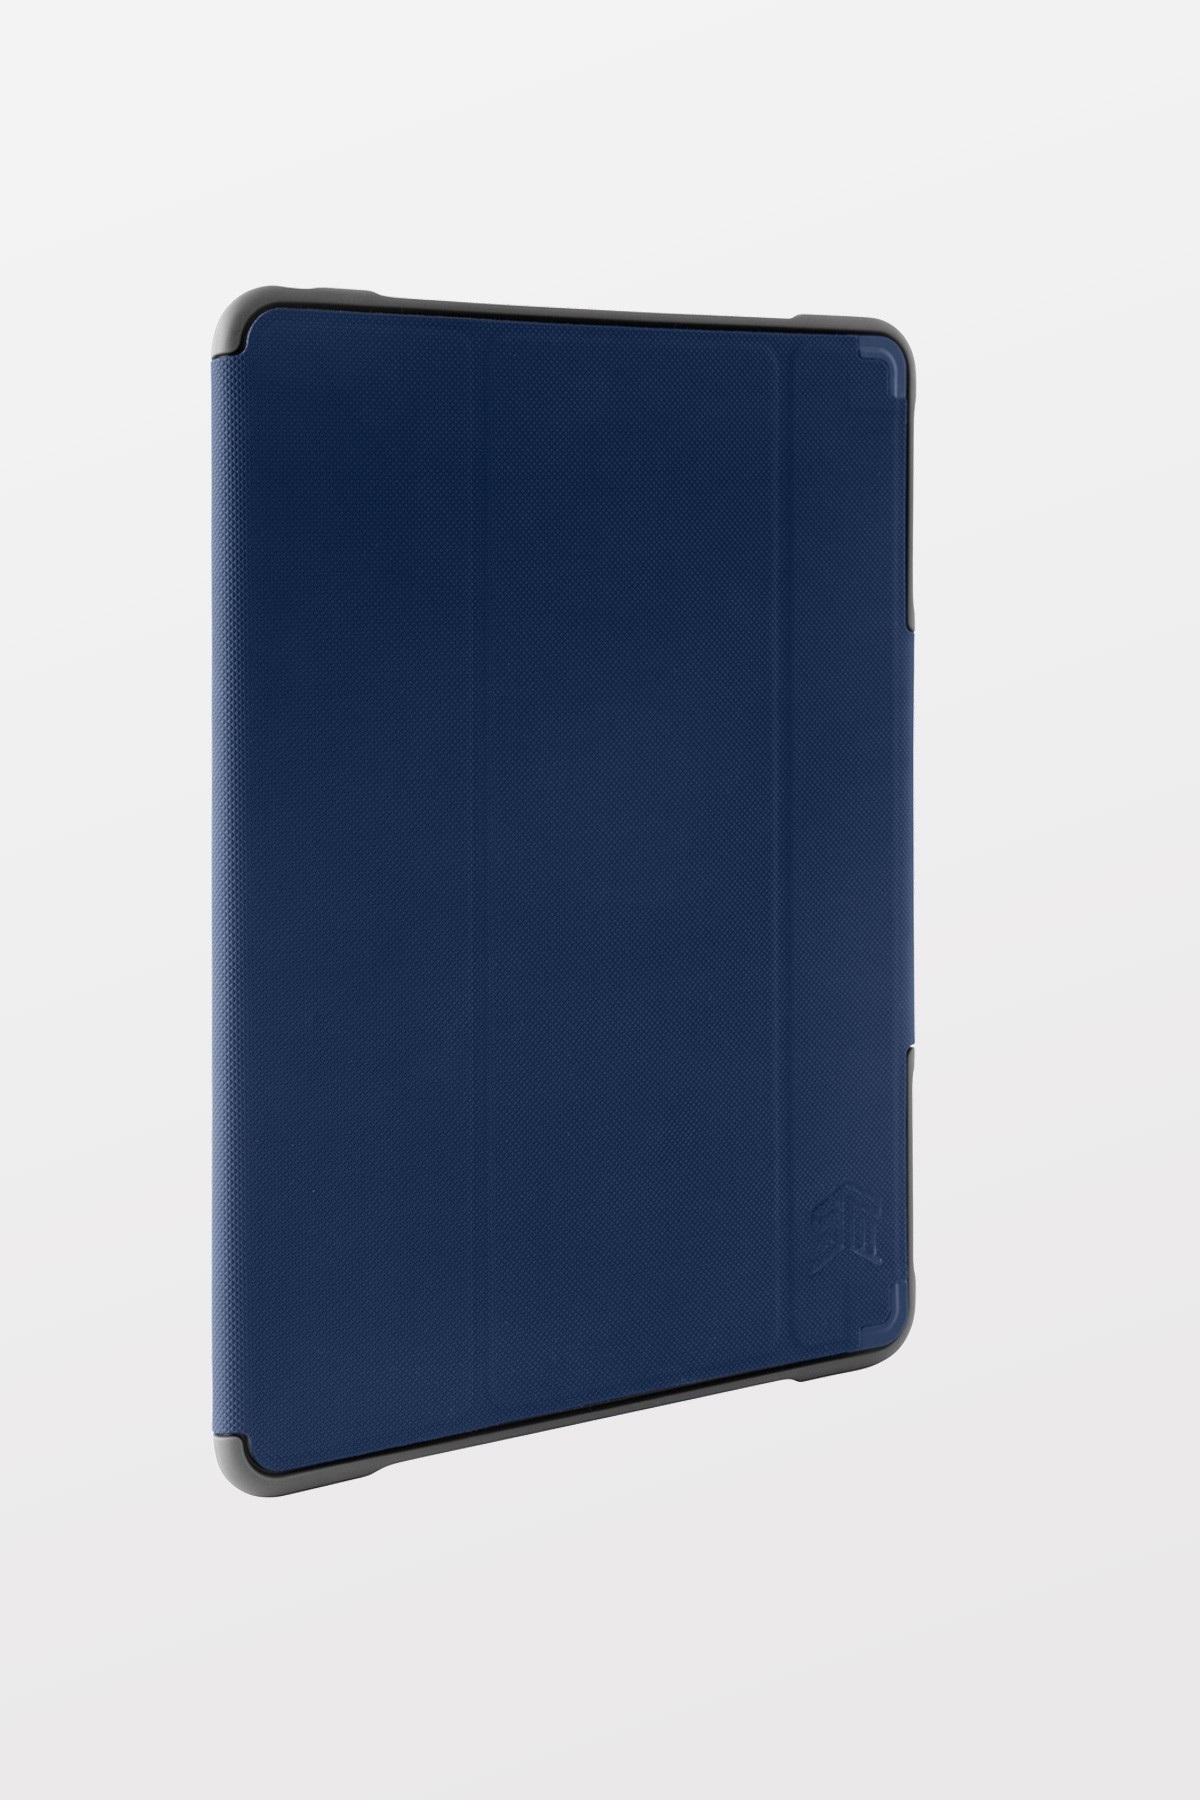 STM Dux Case for iPad (5th/6th Gen) - Blue